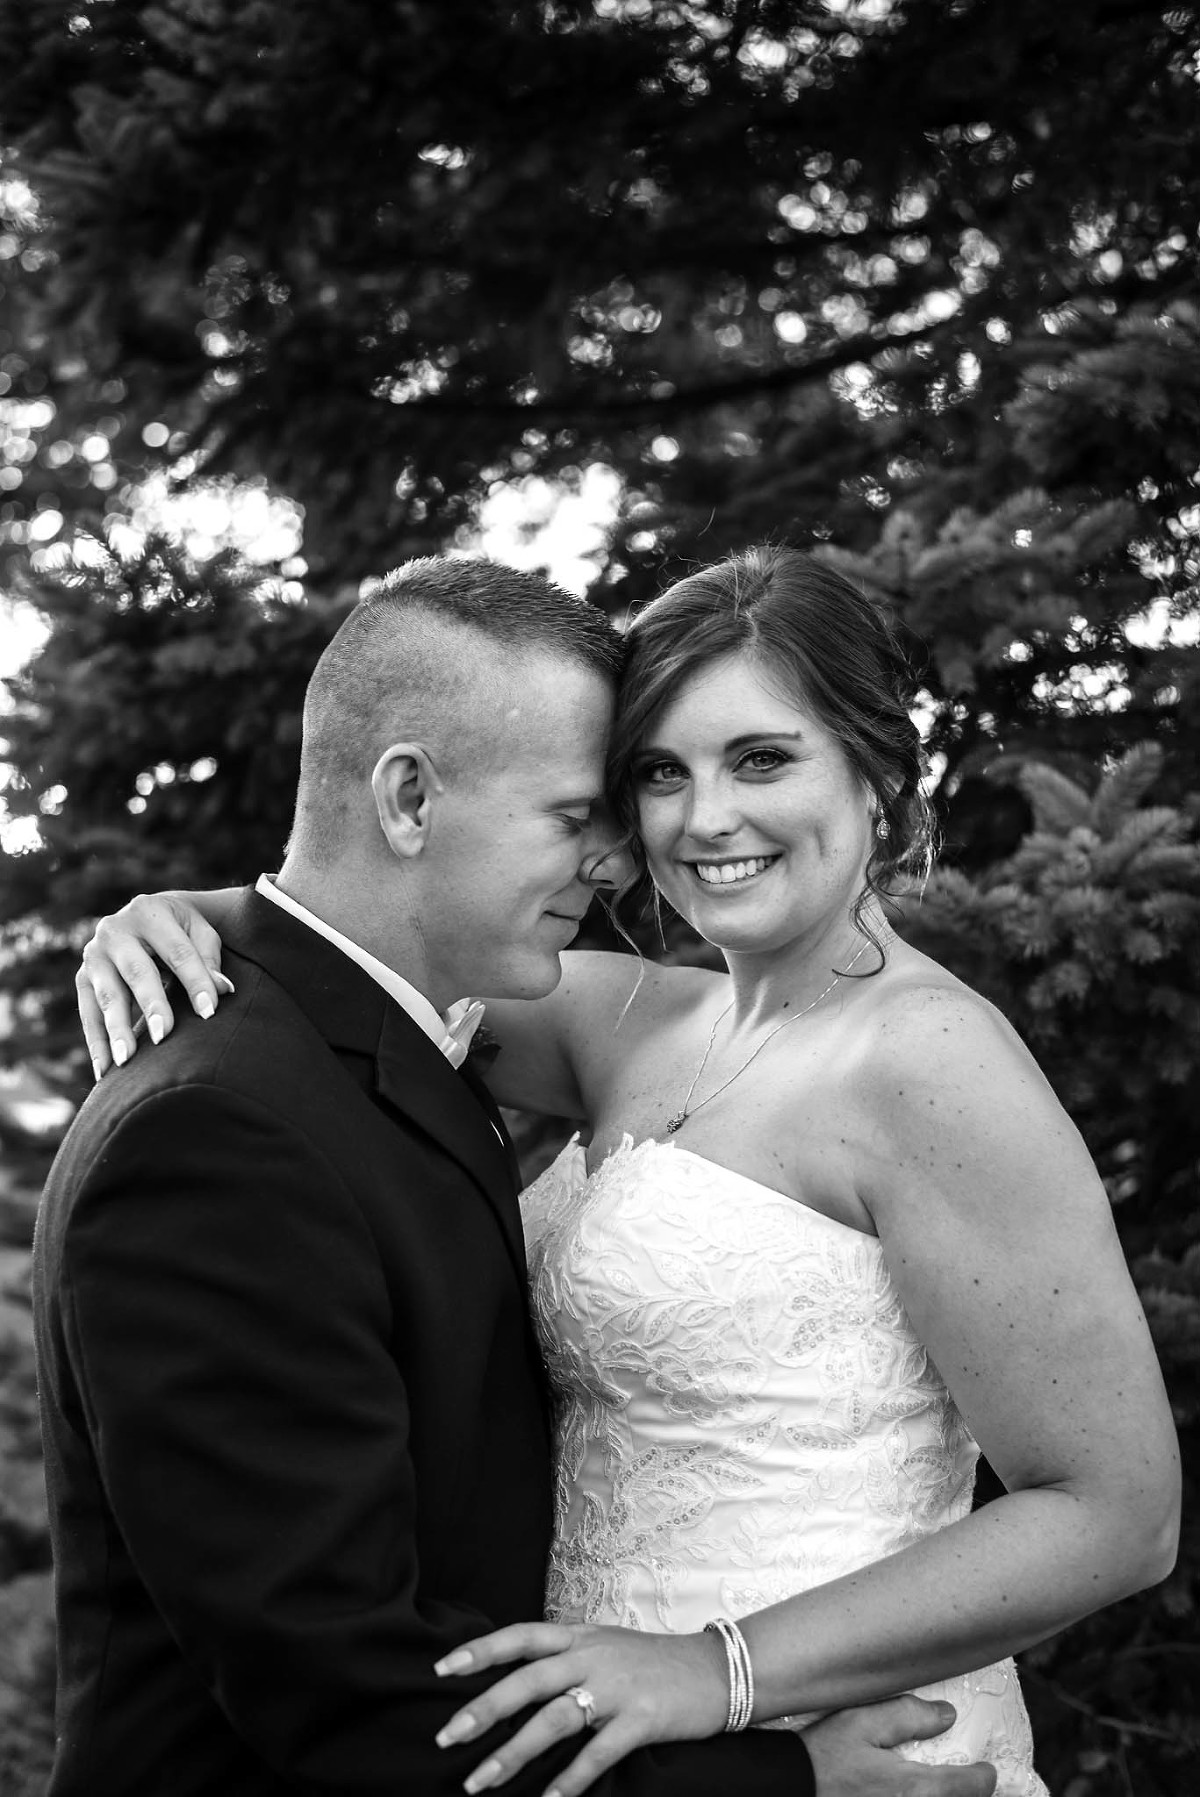 Black and white image of groom nuzzling bride during portrait session near pine trees at their intimate country club wedding at Pine Valley Country Club in Fort Wayne, Indiana